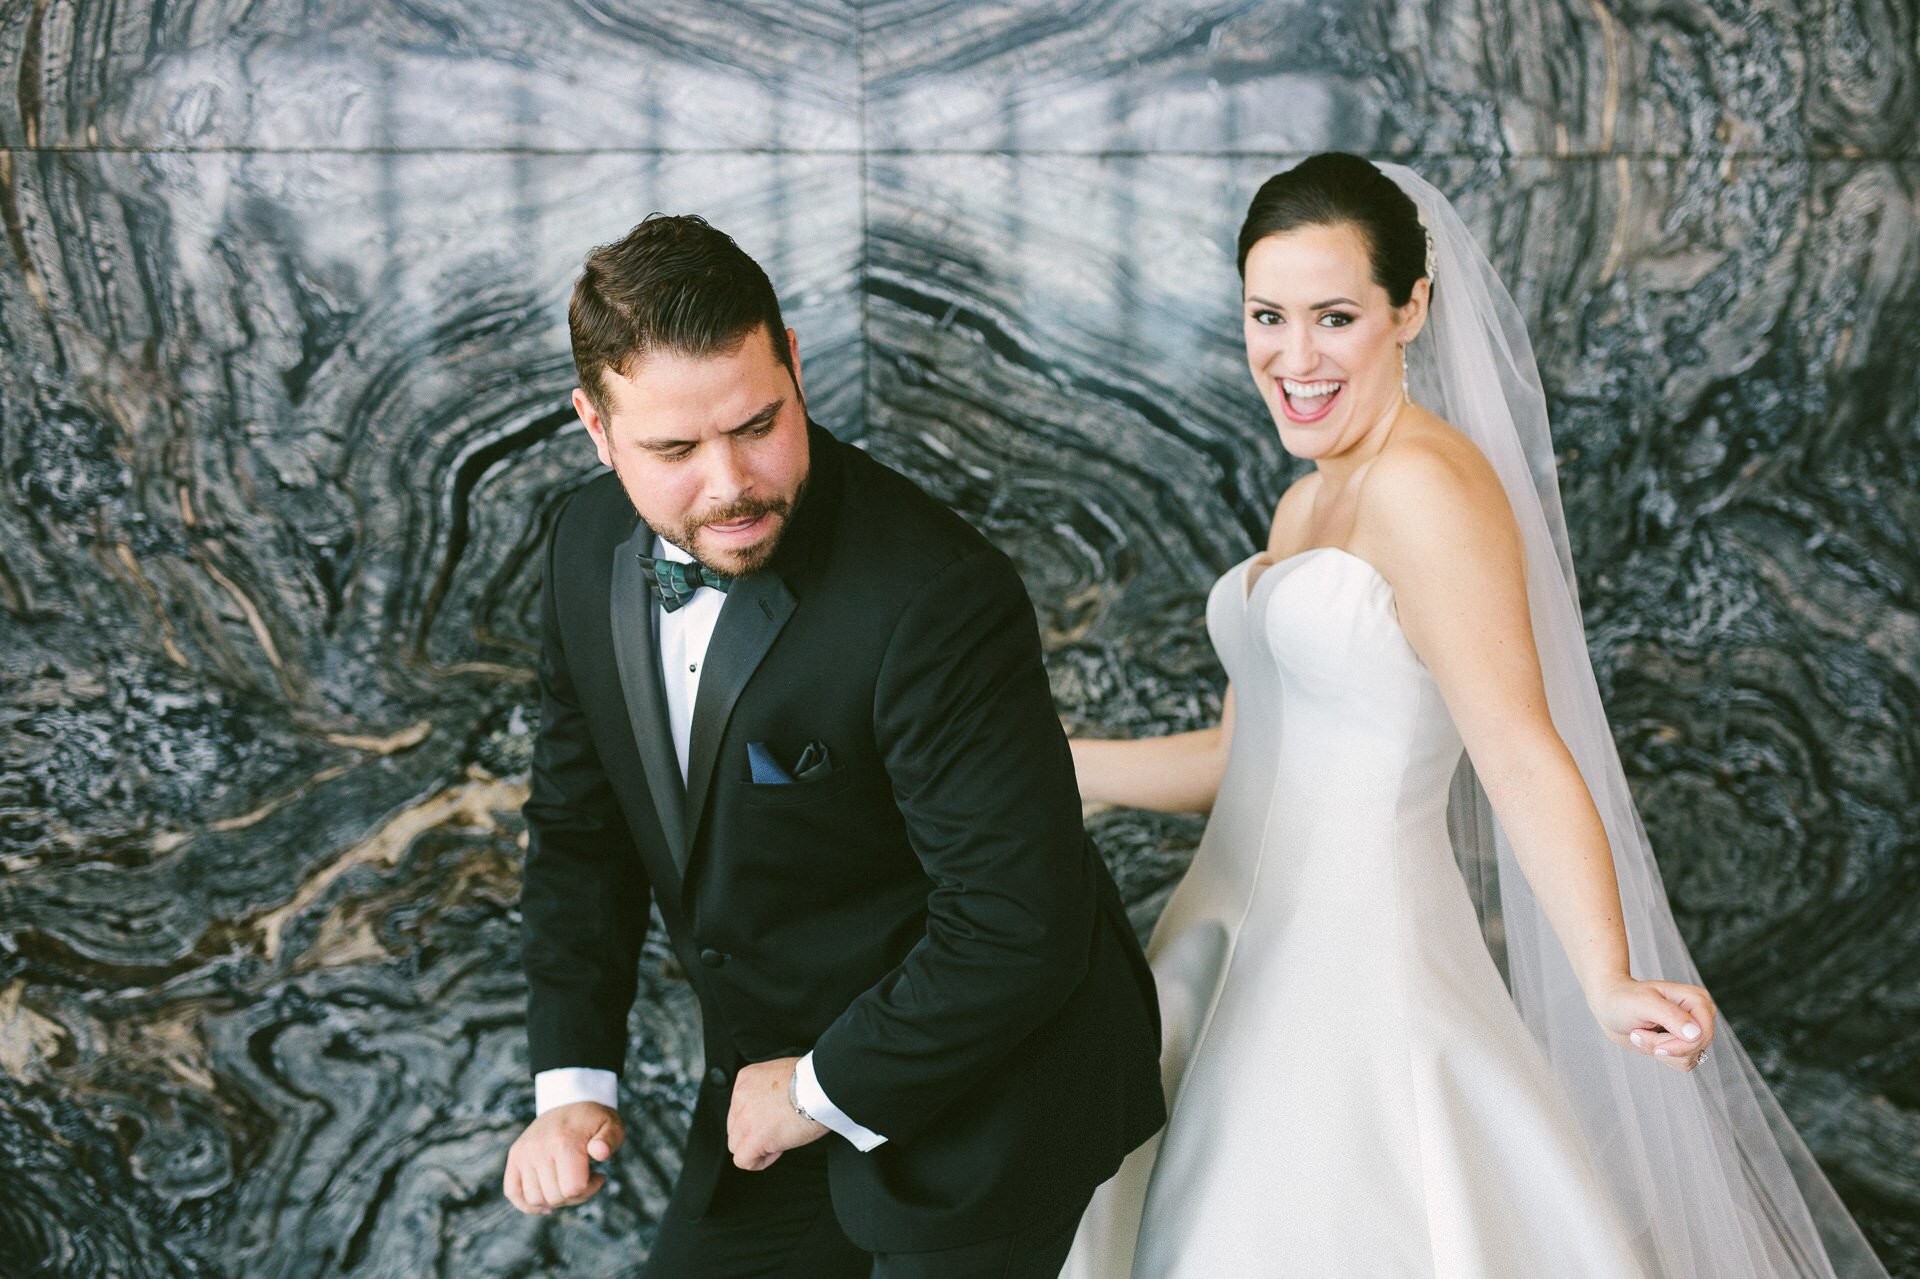 Playhouse State Theater Wedding Photographer in Cleveland 1 25.jpg